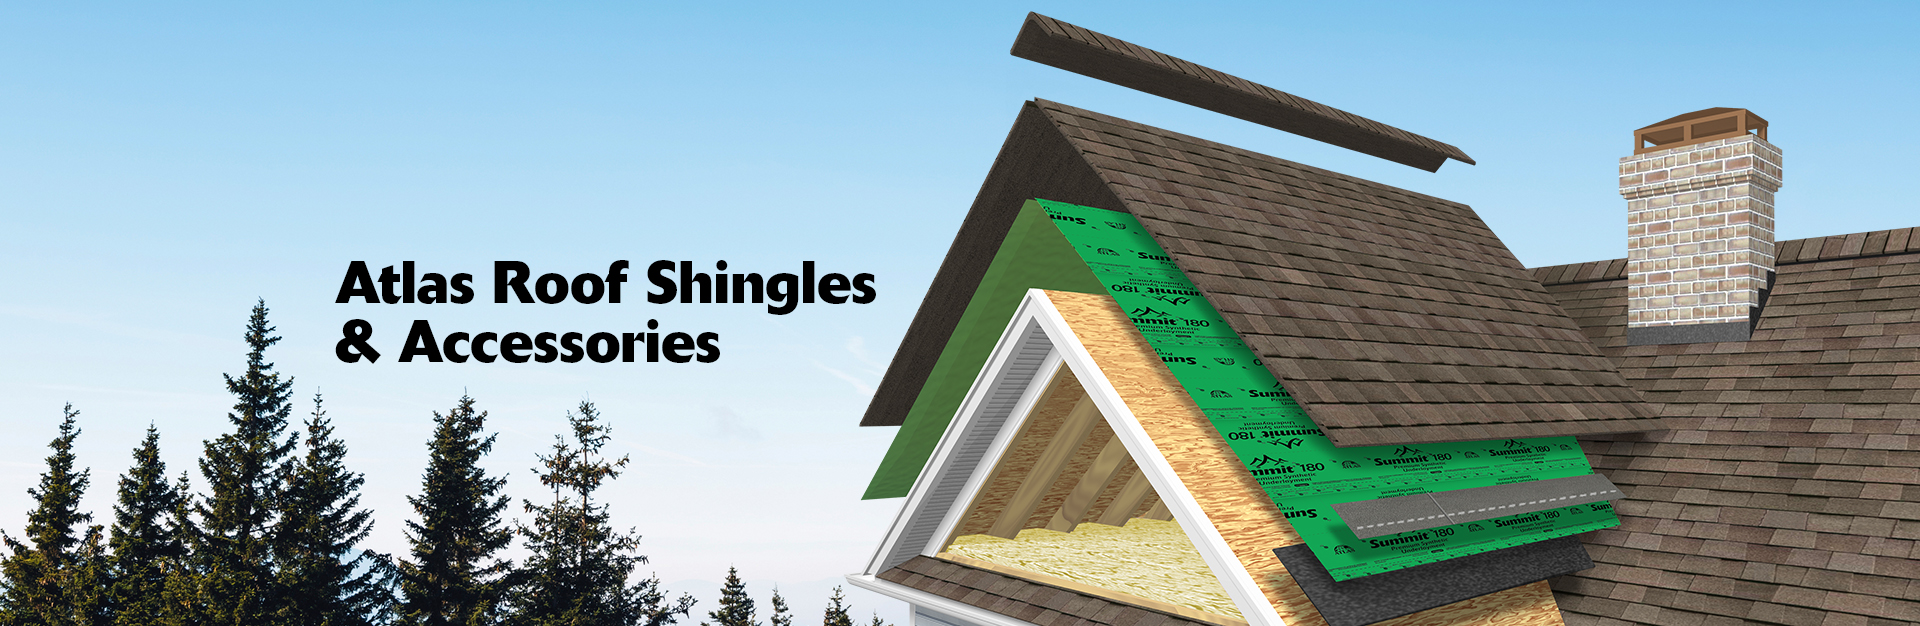 Roof Shingles And Accessories Atlas Roofing